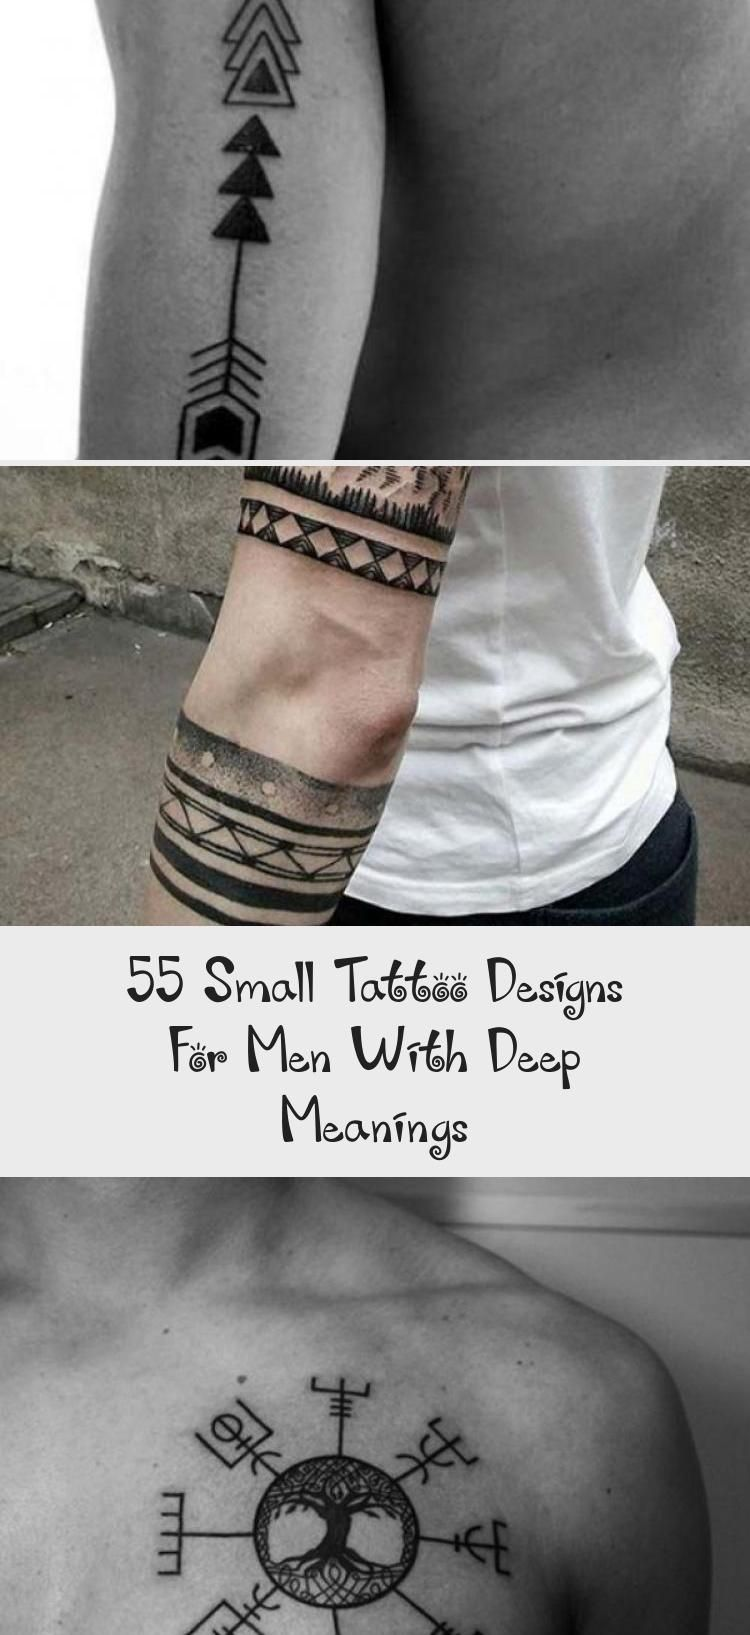 55 Small Tattoo Designs For Men With Deep Meanings in 2020